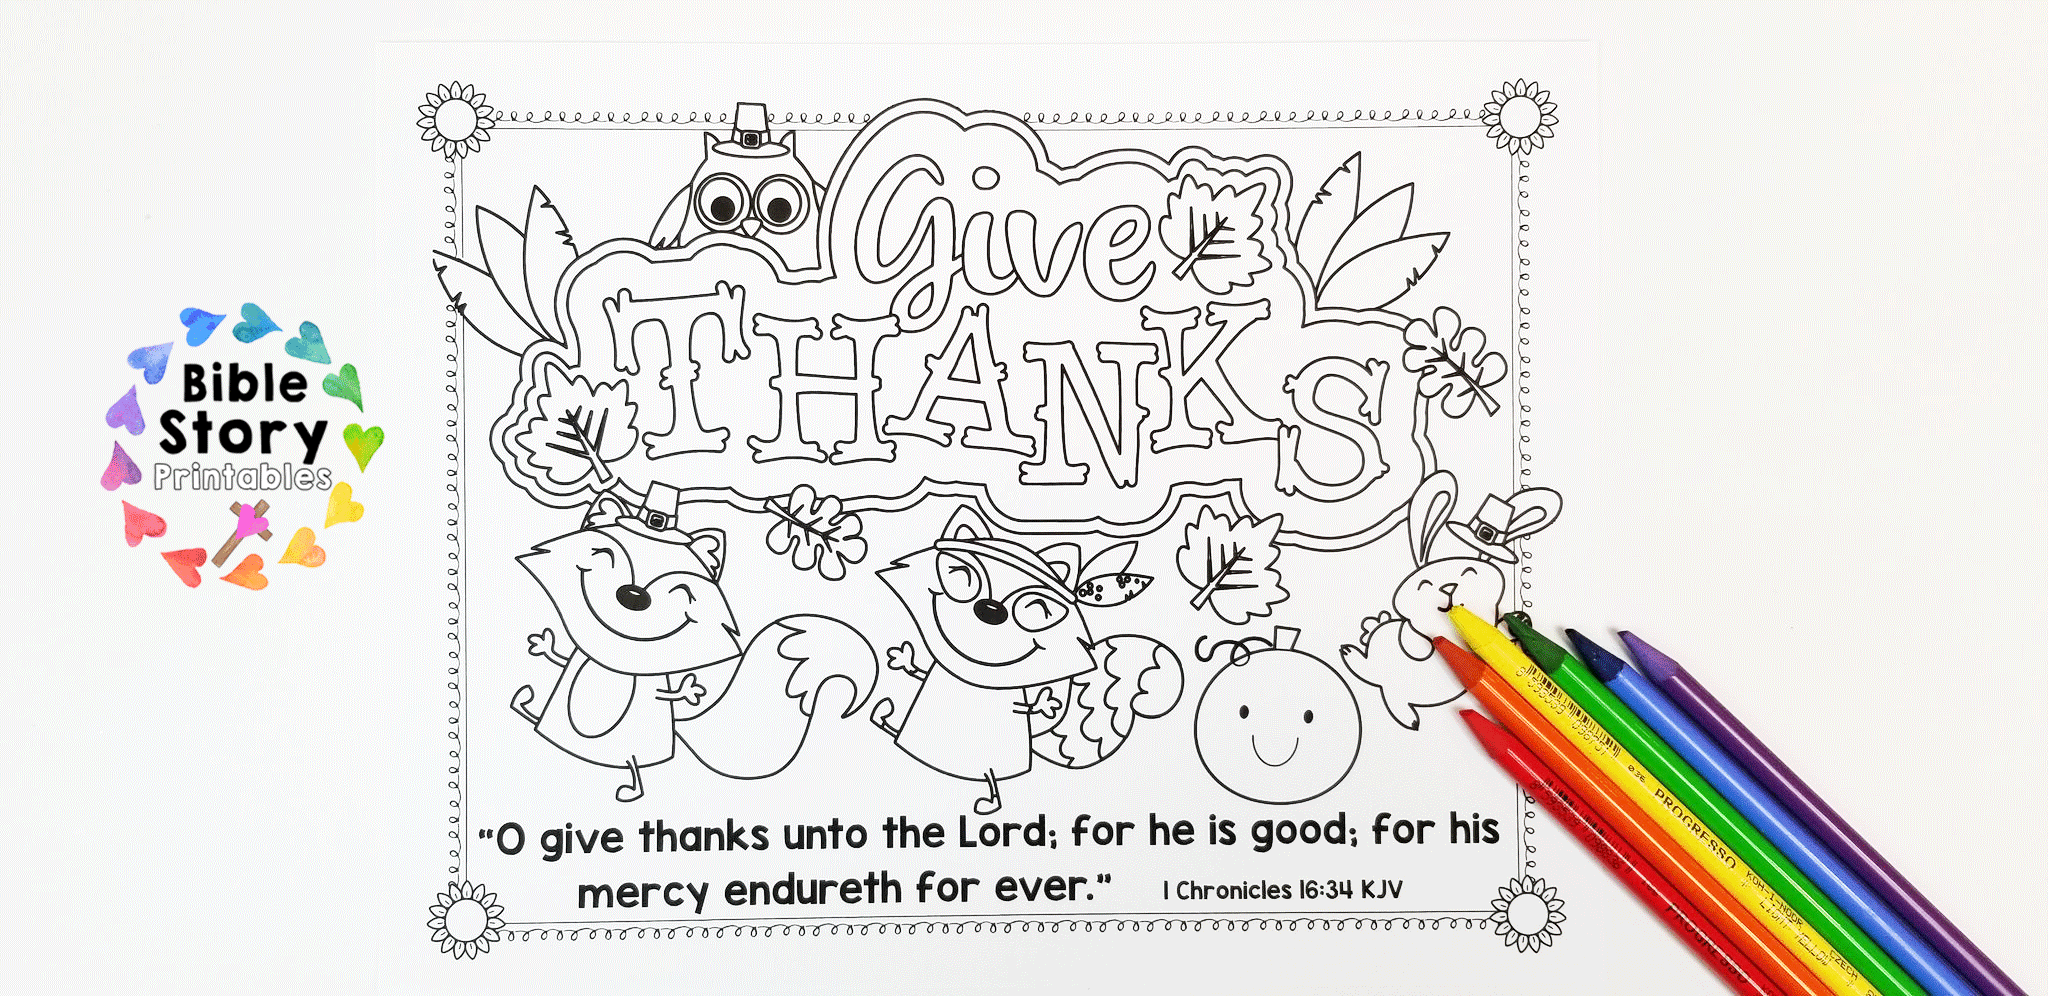 image relating to Thanksgiving Placemats Printable identify Printable Thanksgiving Placemat with Bible Verse - The